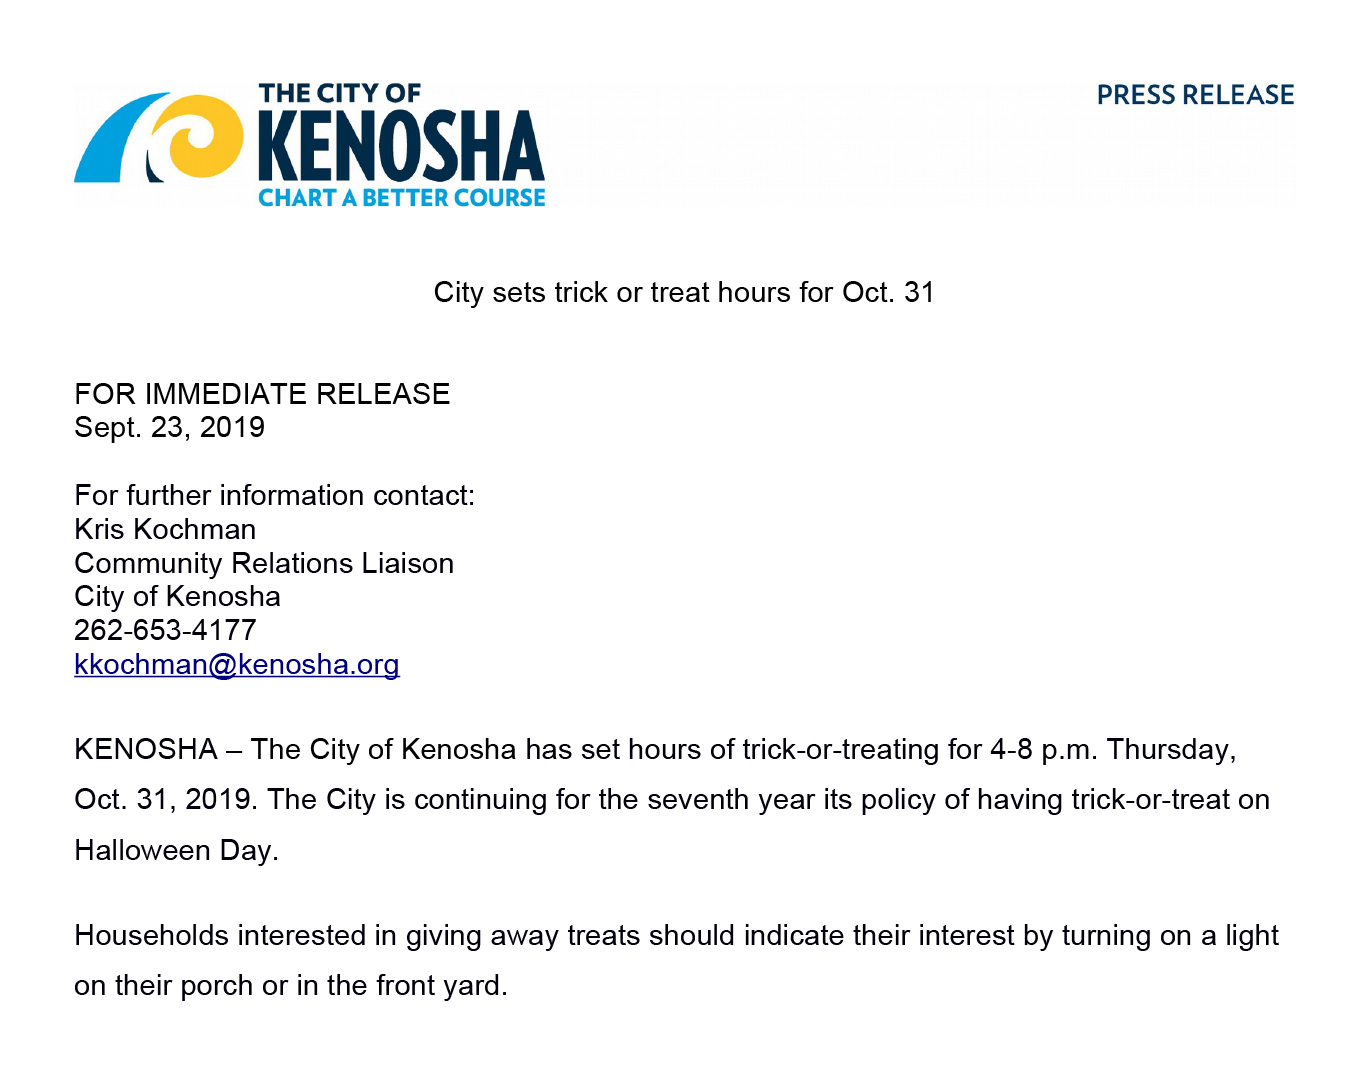 City of Kenosha Public Press Release on trick or treat times and hours for Halloween 2019 on October 31st